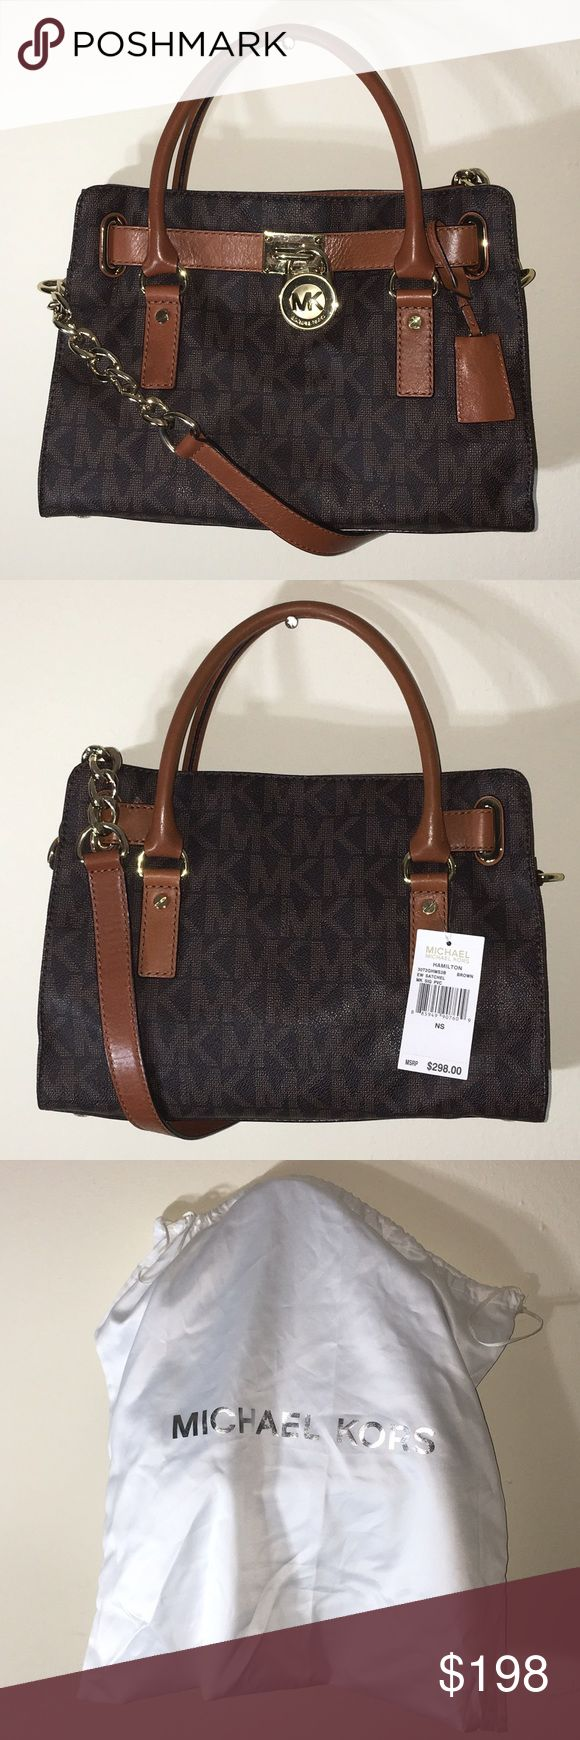 Michael Kors brown logo Hamilton Satchel with tag This is a 100% authentic MK bag with tag attached as shown in photo. It was the one on display, so there is very slight normal wear and tear from it being the one on display. Comes with dust bag. Was a gift --- too small for what I needed it for. Michael Kors Bags Satchels